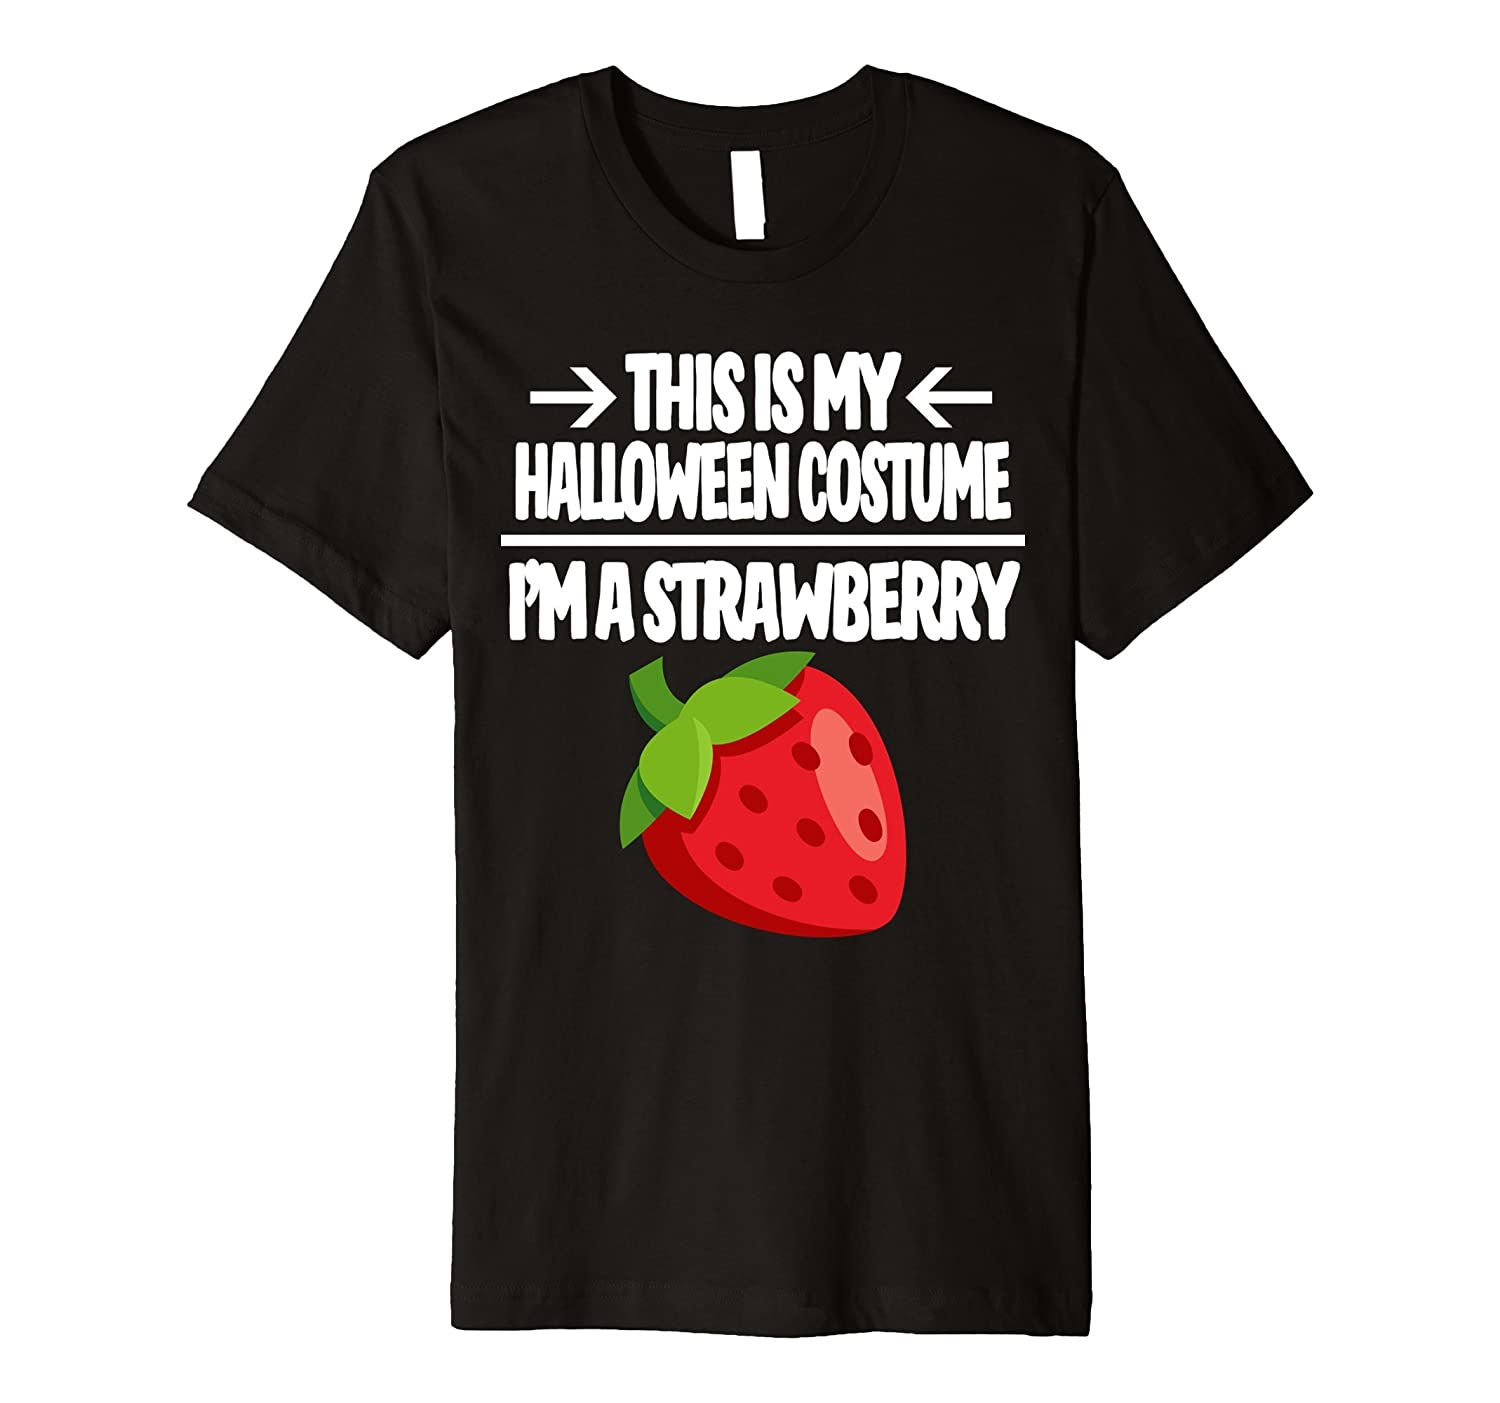 Strawberry Halloween Costume Shirt - Men Women Youth Sizes